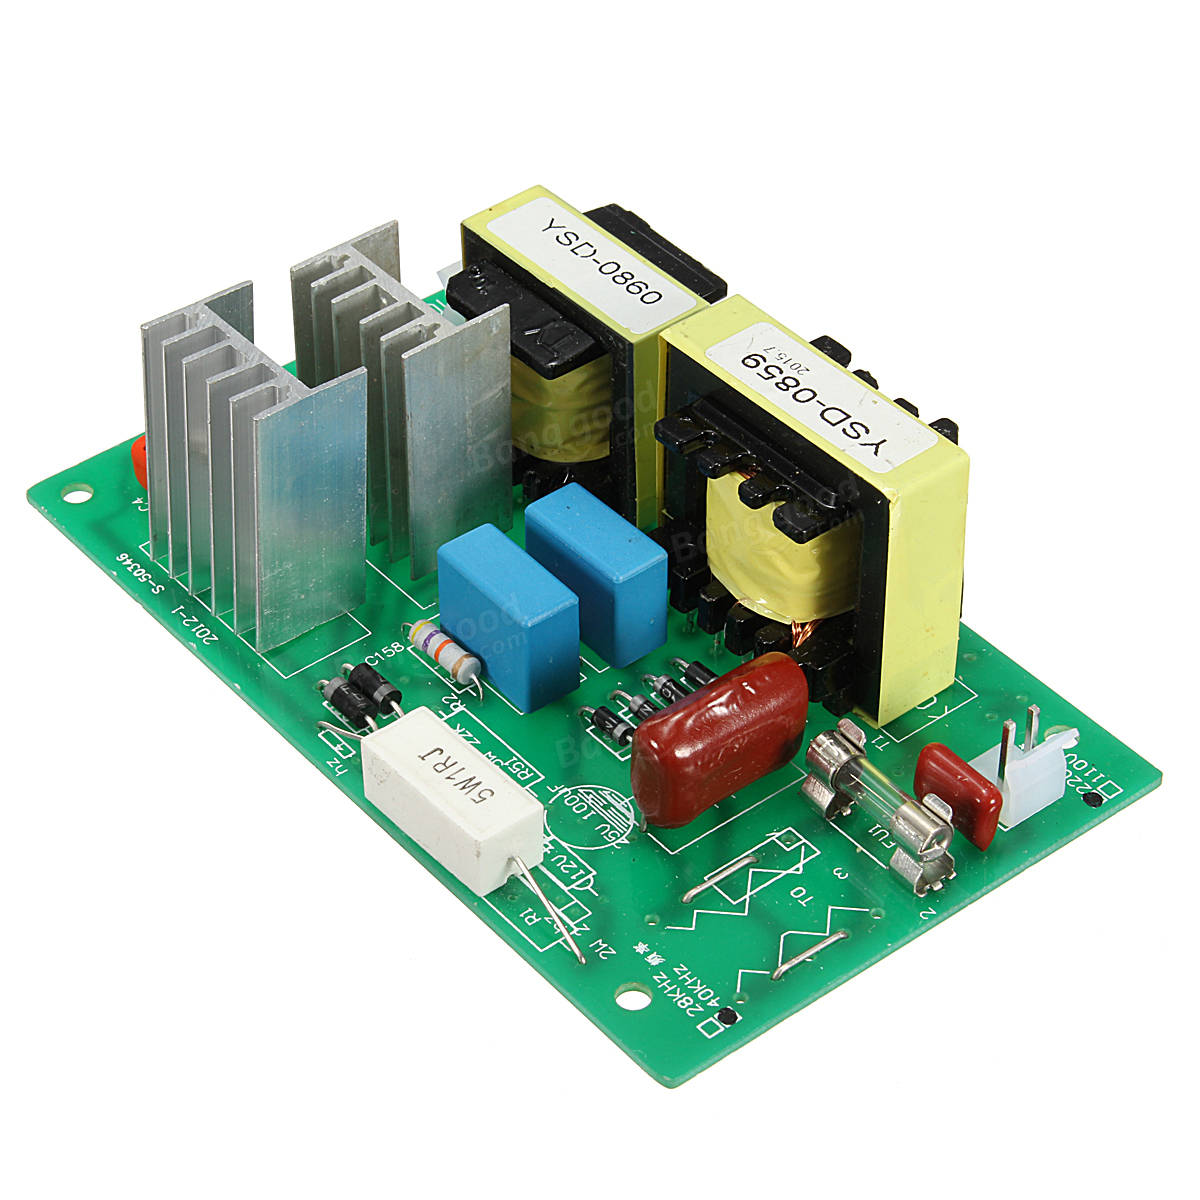 Ac 100w 40khz Ultrasonic Cleaning Power Driver Board With 50w 40k Transmitter Circuit Transducer 220v